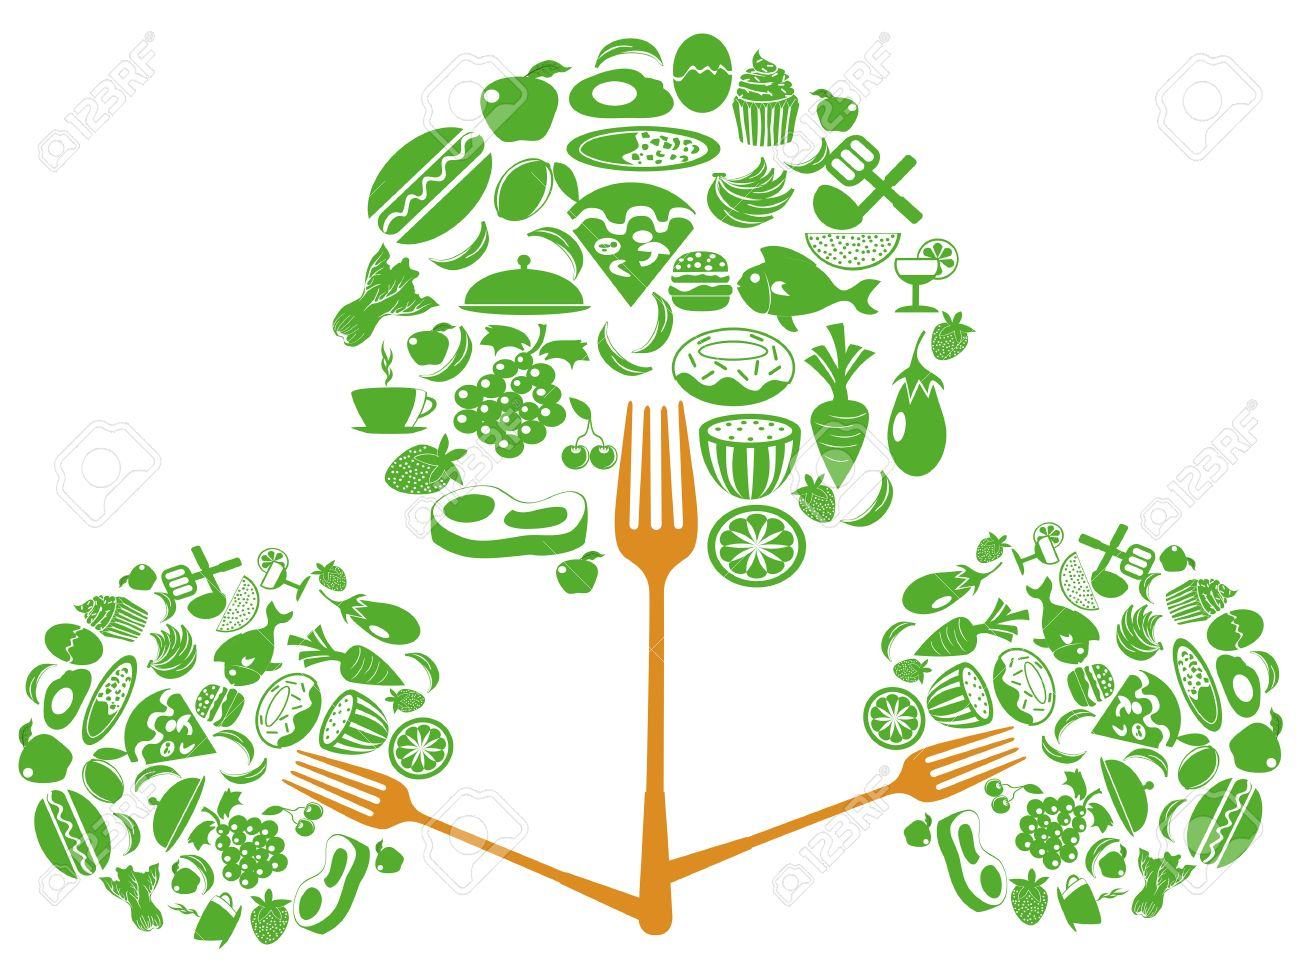 Food from trees clipart jpg freeuse download Eco Food Fork Tree For Food Background Royalty Free Cliparts ... jpg freeuse download